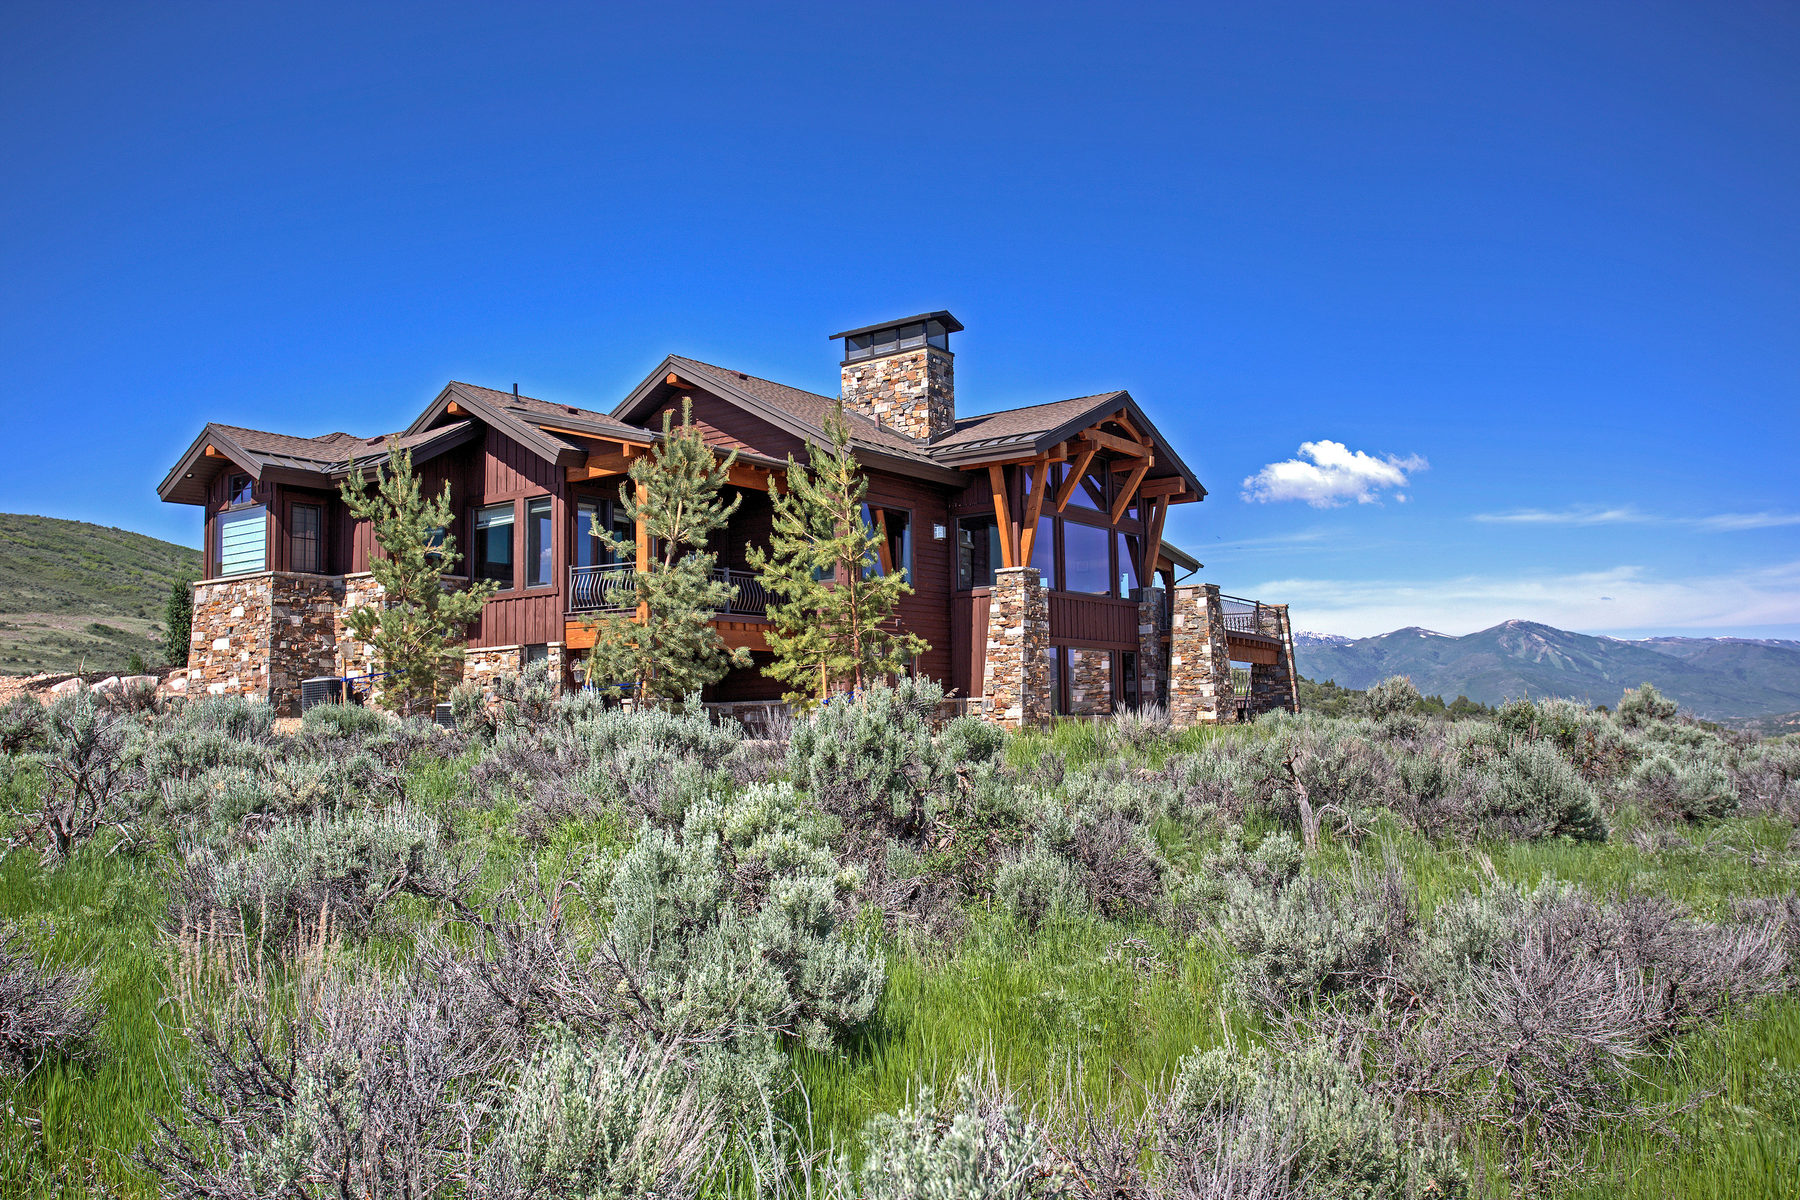 Maison unifamiliale pour l Vente à Custom Home with Panoramic River and Mountain Views 5891 N Caddis Cir Heber City, Utah, 84032 États-Unis